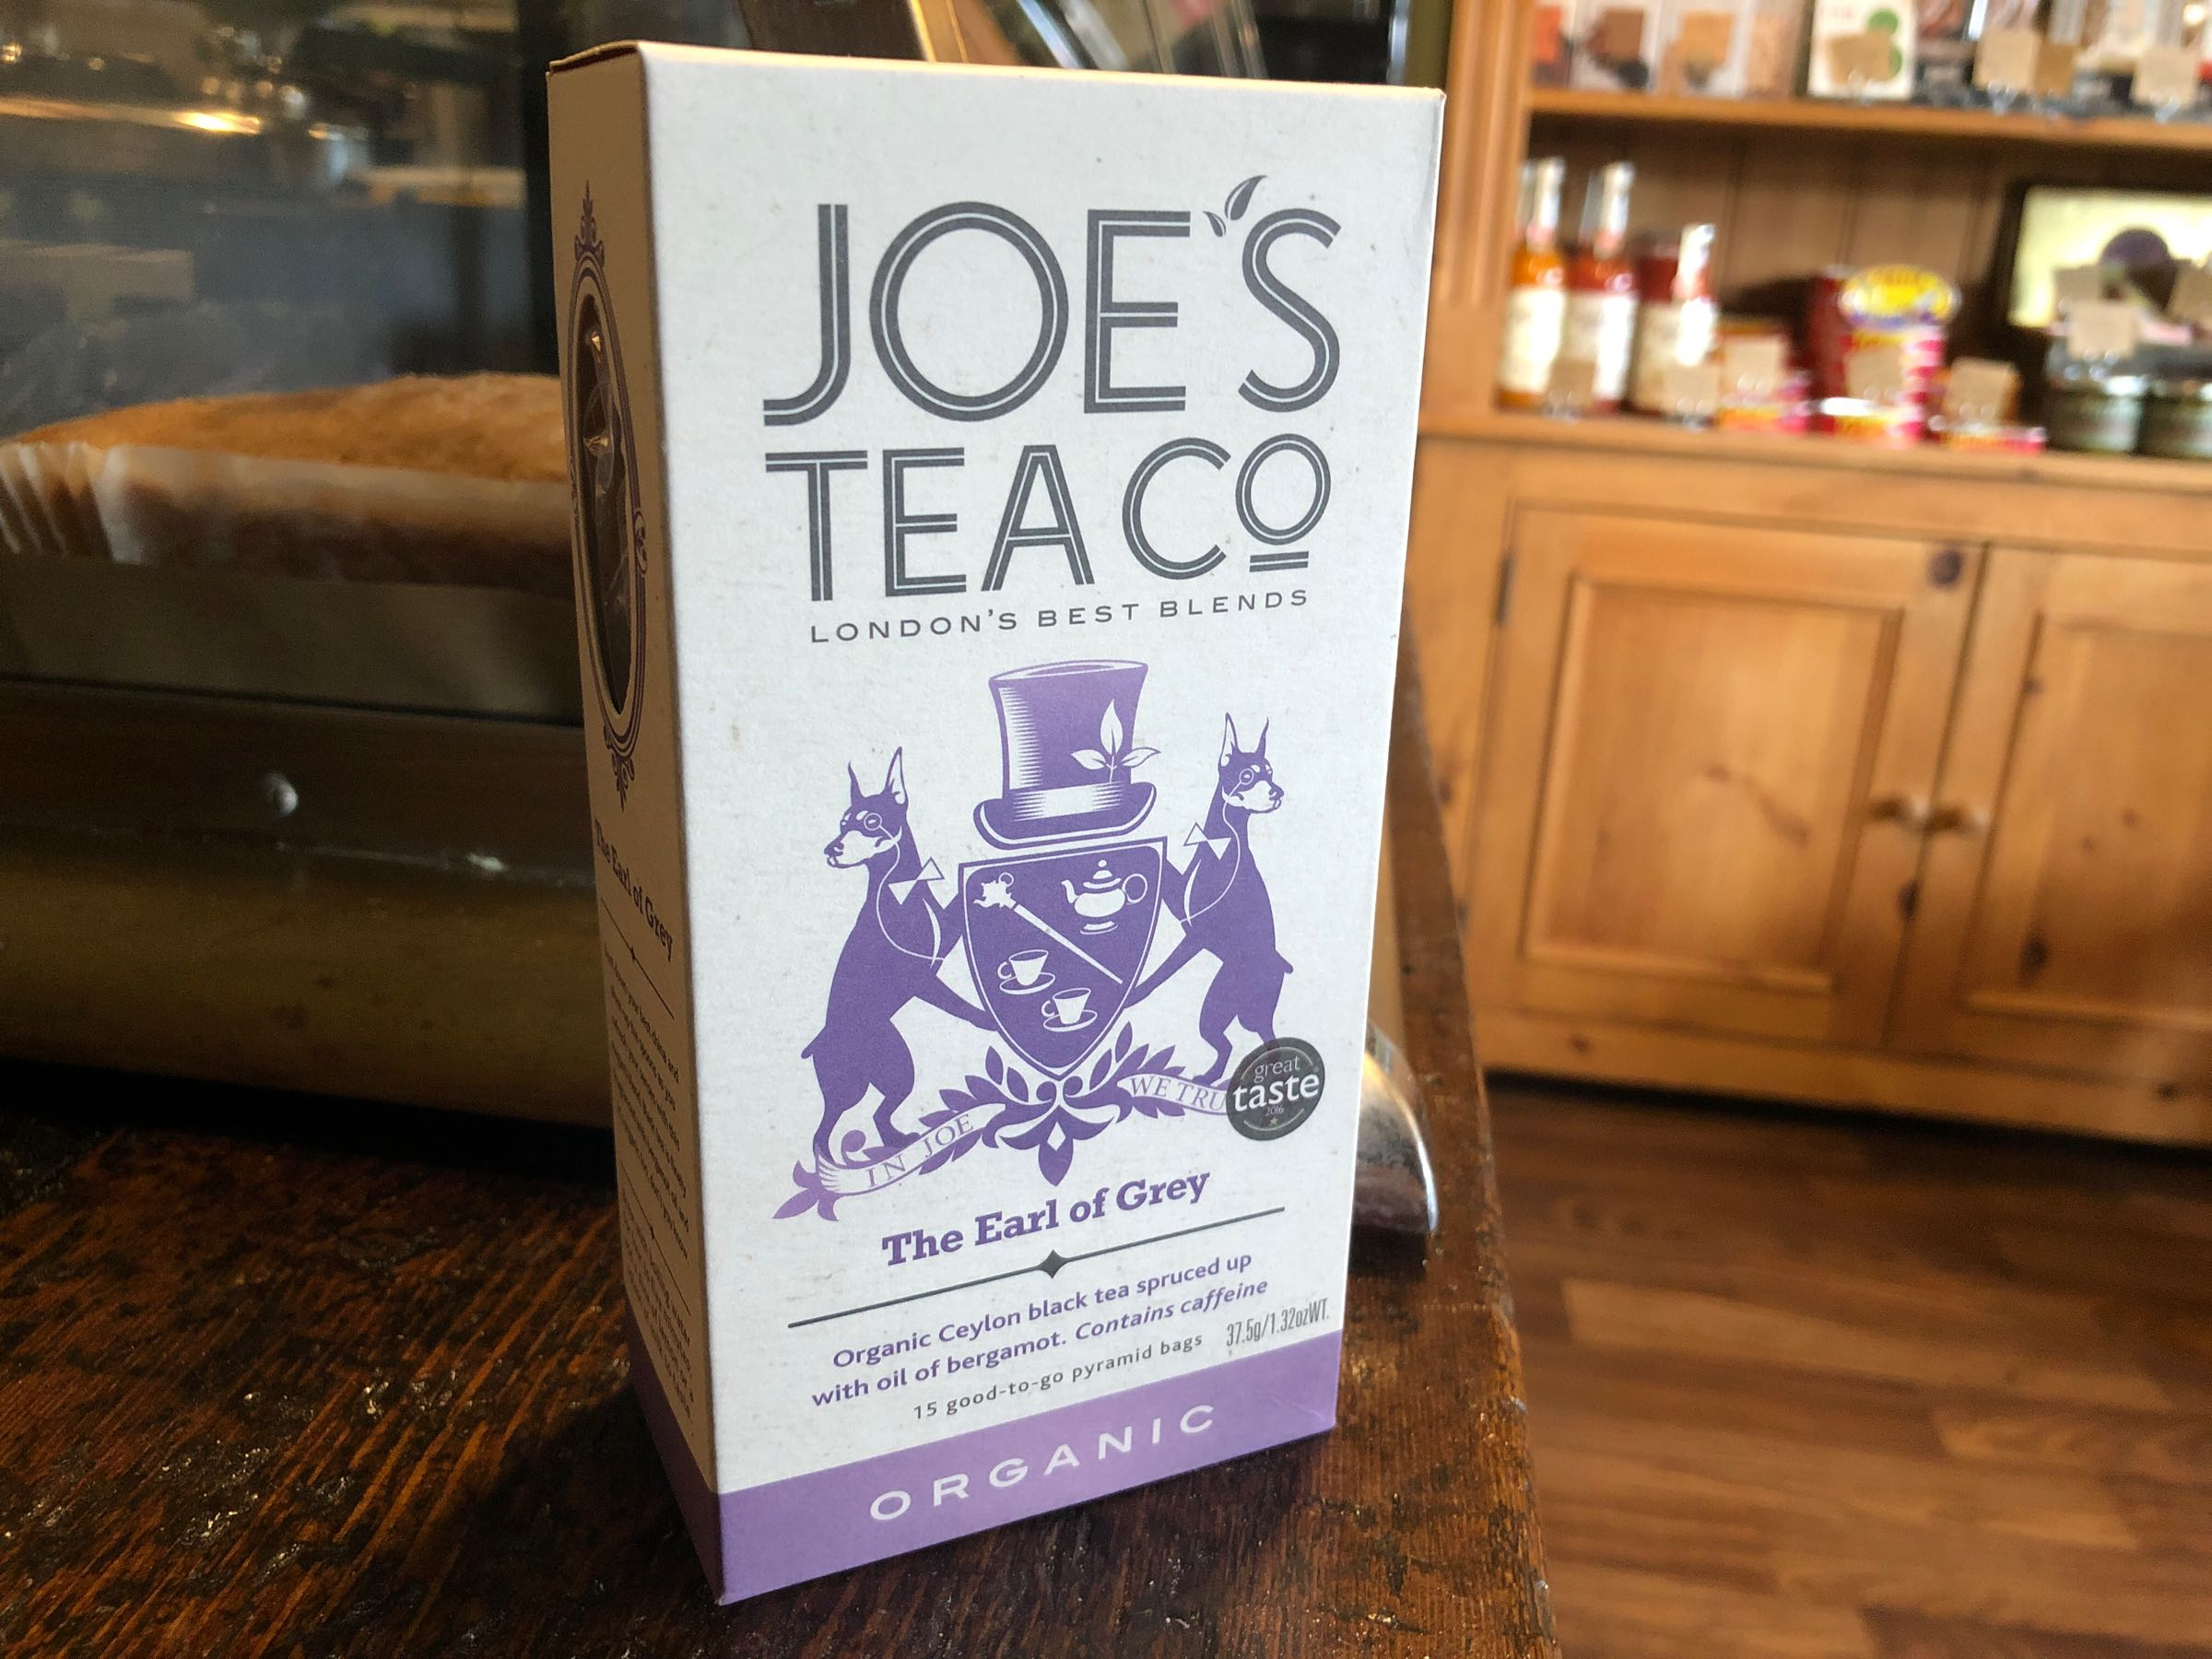 Joe's Tea Co. The Earl of Grey - Organic